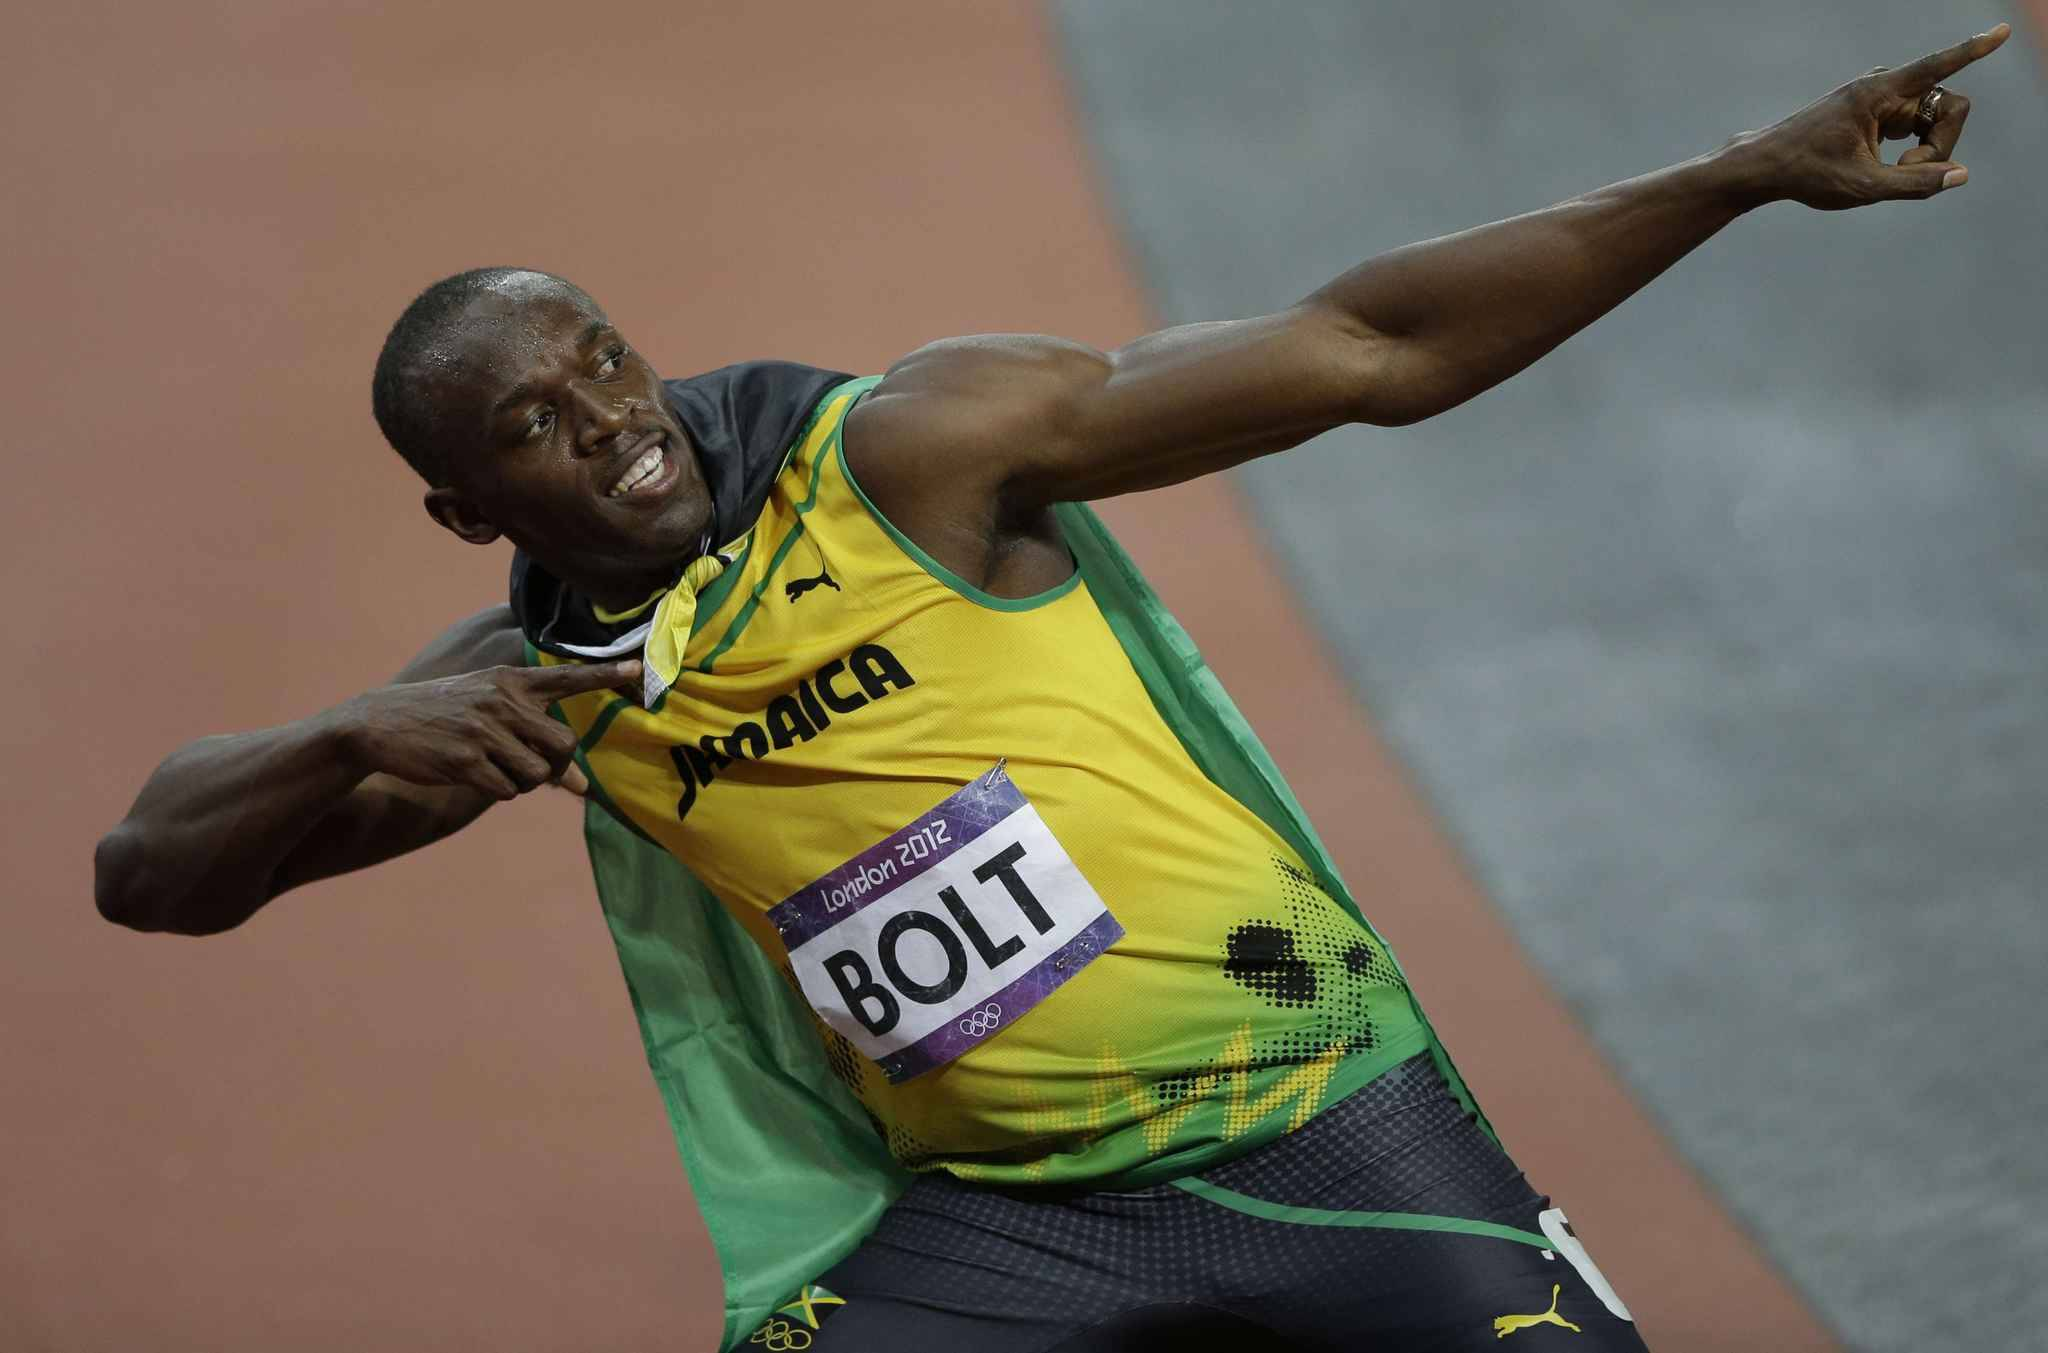 Jamaica's Usain Bolt reacts after winning the men's 100-meter during the athletics in the Olympic Stadium at the 2012 Summer Olympics, London, Sunday, Aug. 5, 2012.